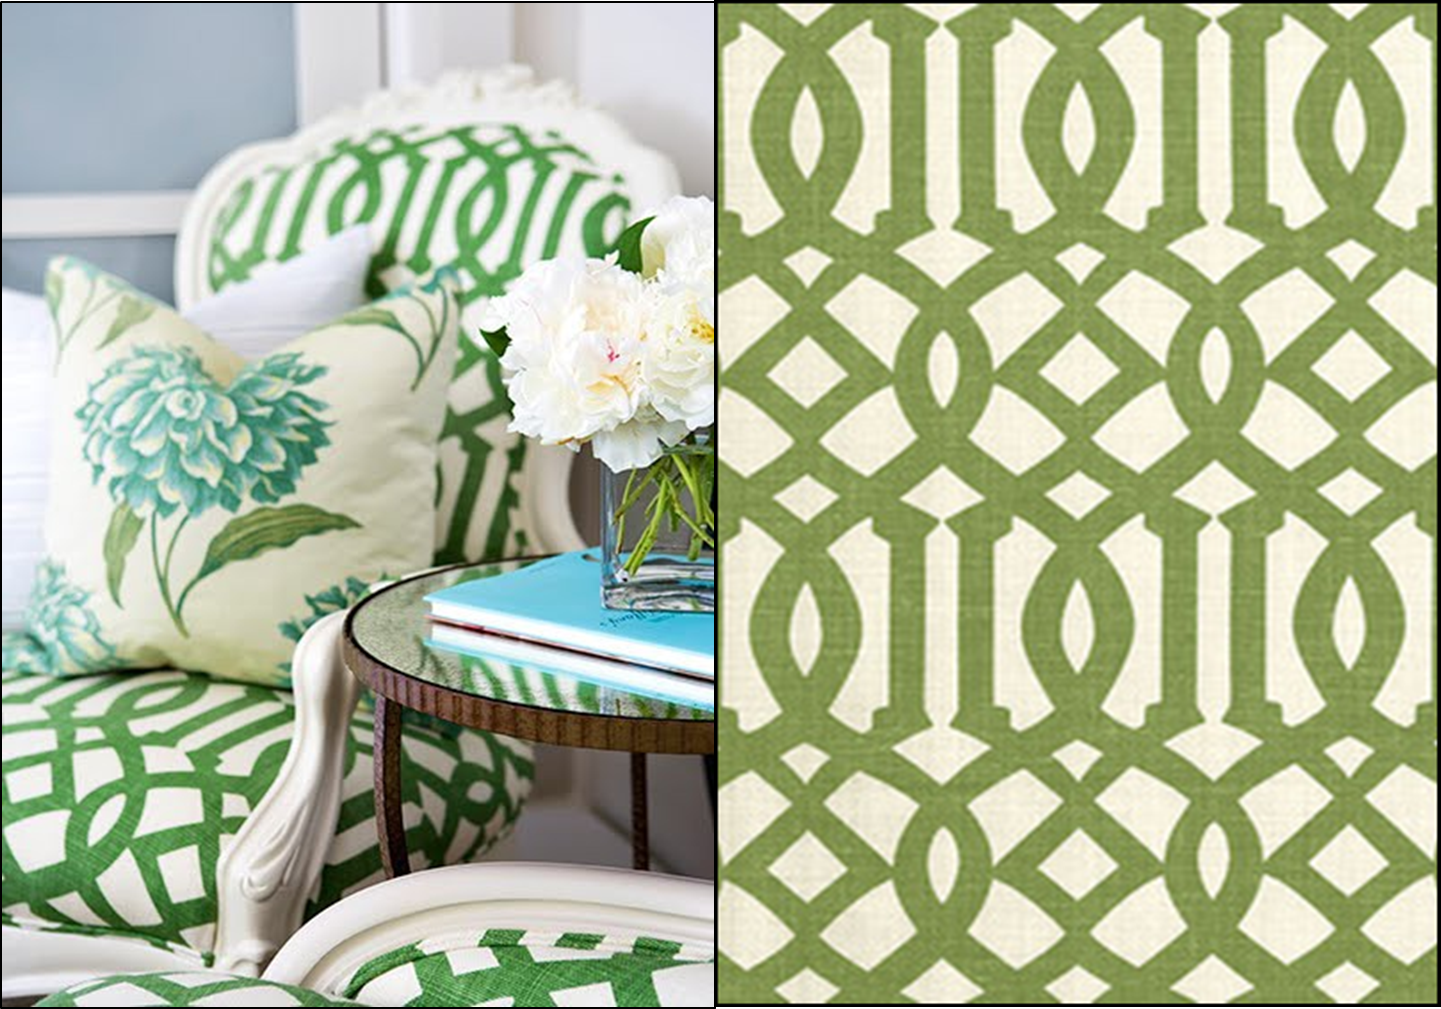 Giveaway Imperial Trellis Christine Dovey 1441x1009